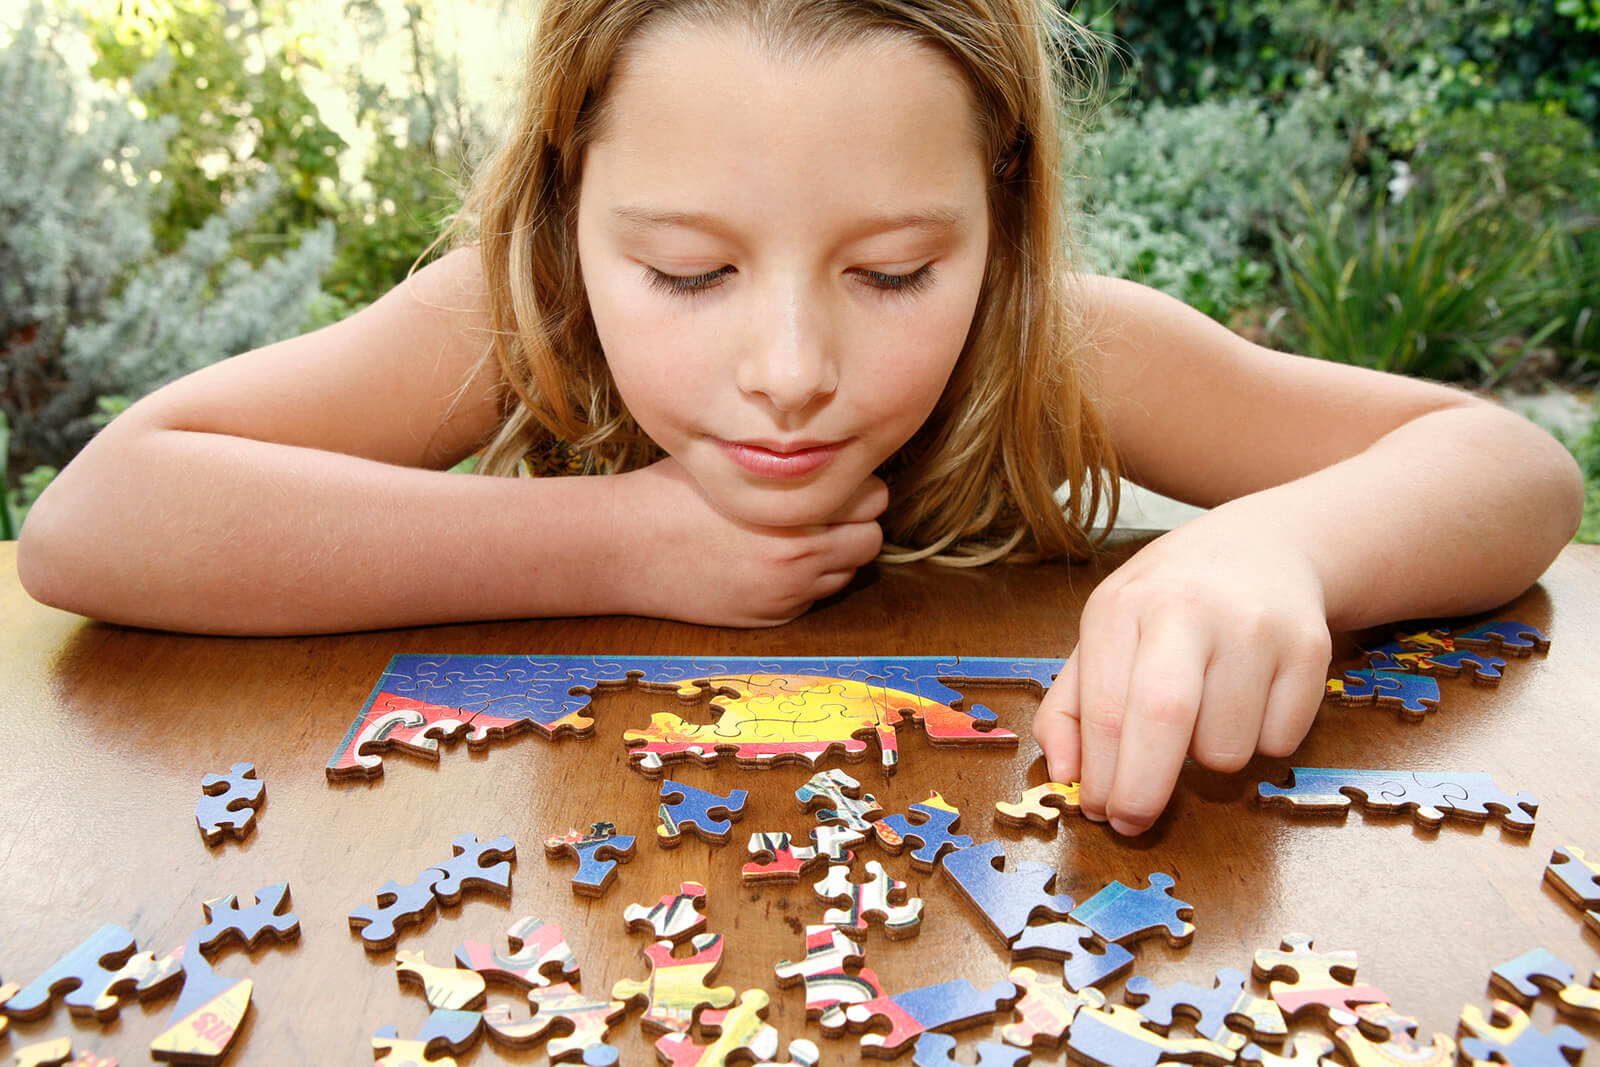 227672-1600x1067-girl-doing-puzzle-1